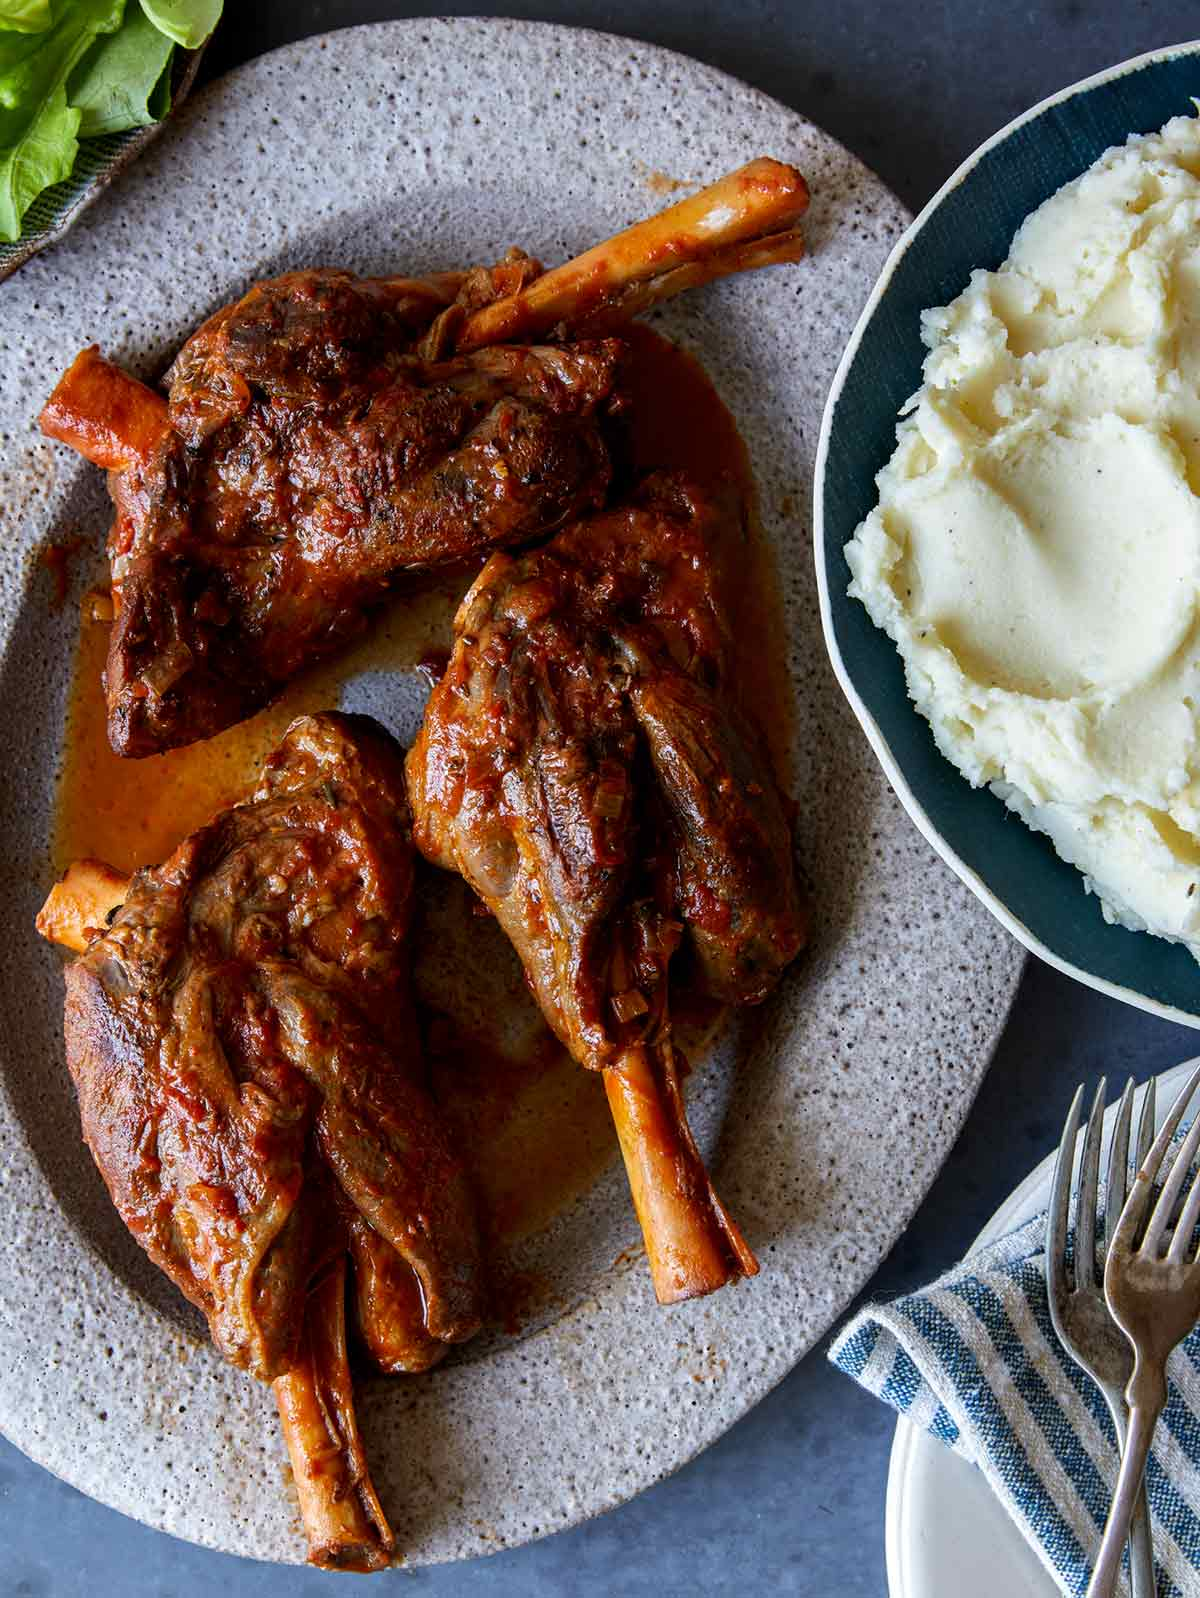 Braised Lamb shanks on a platter with mashed potatoes next to it.